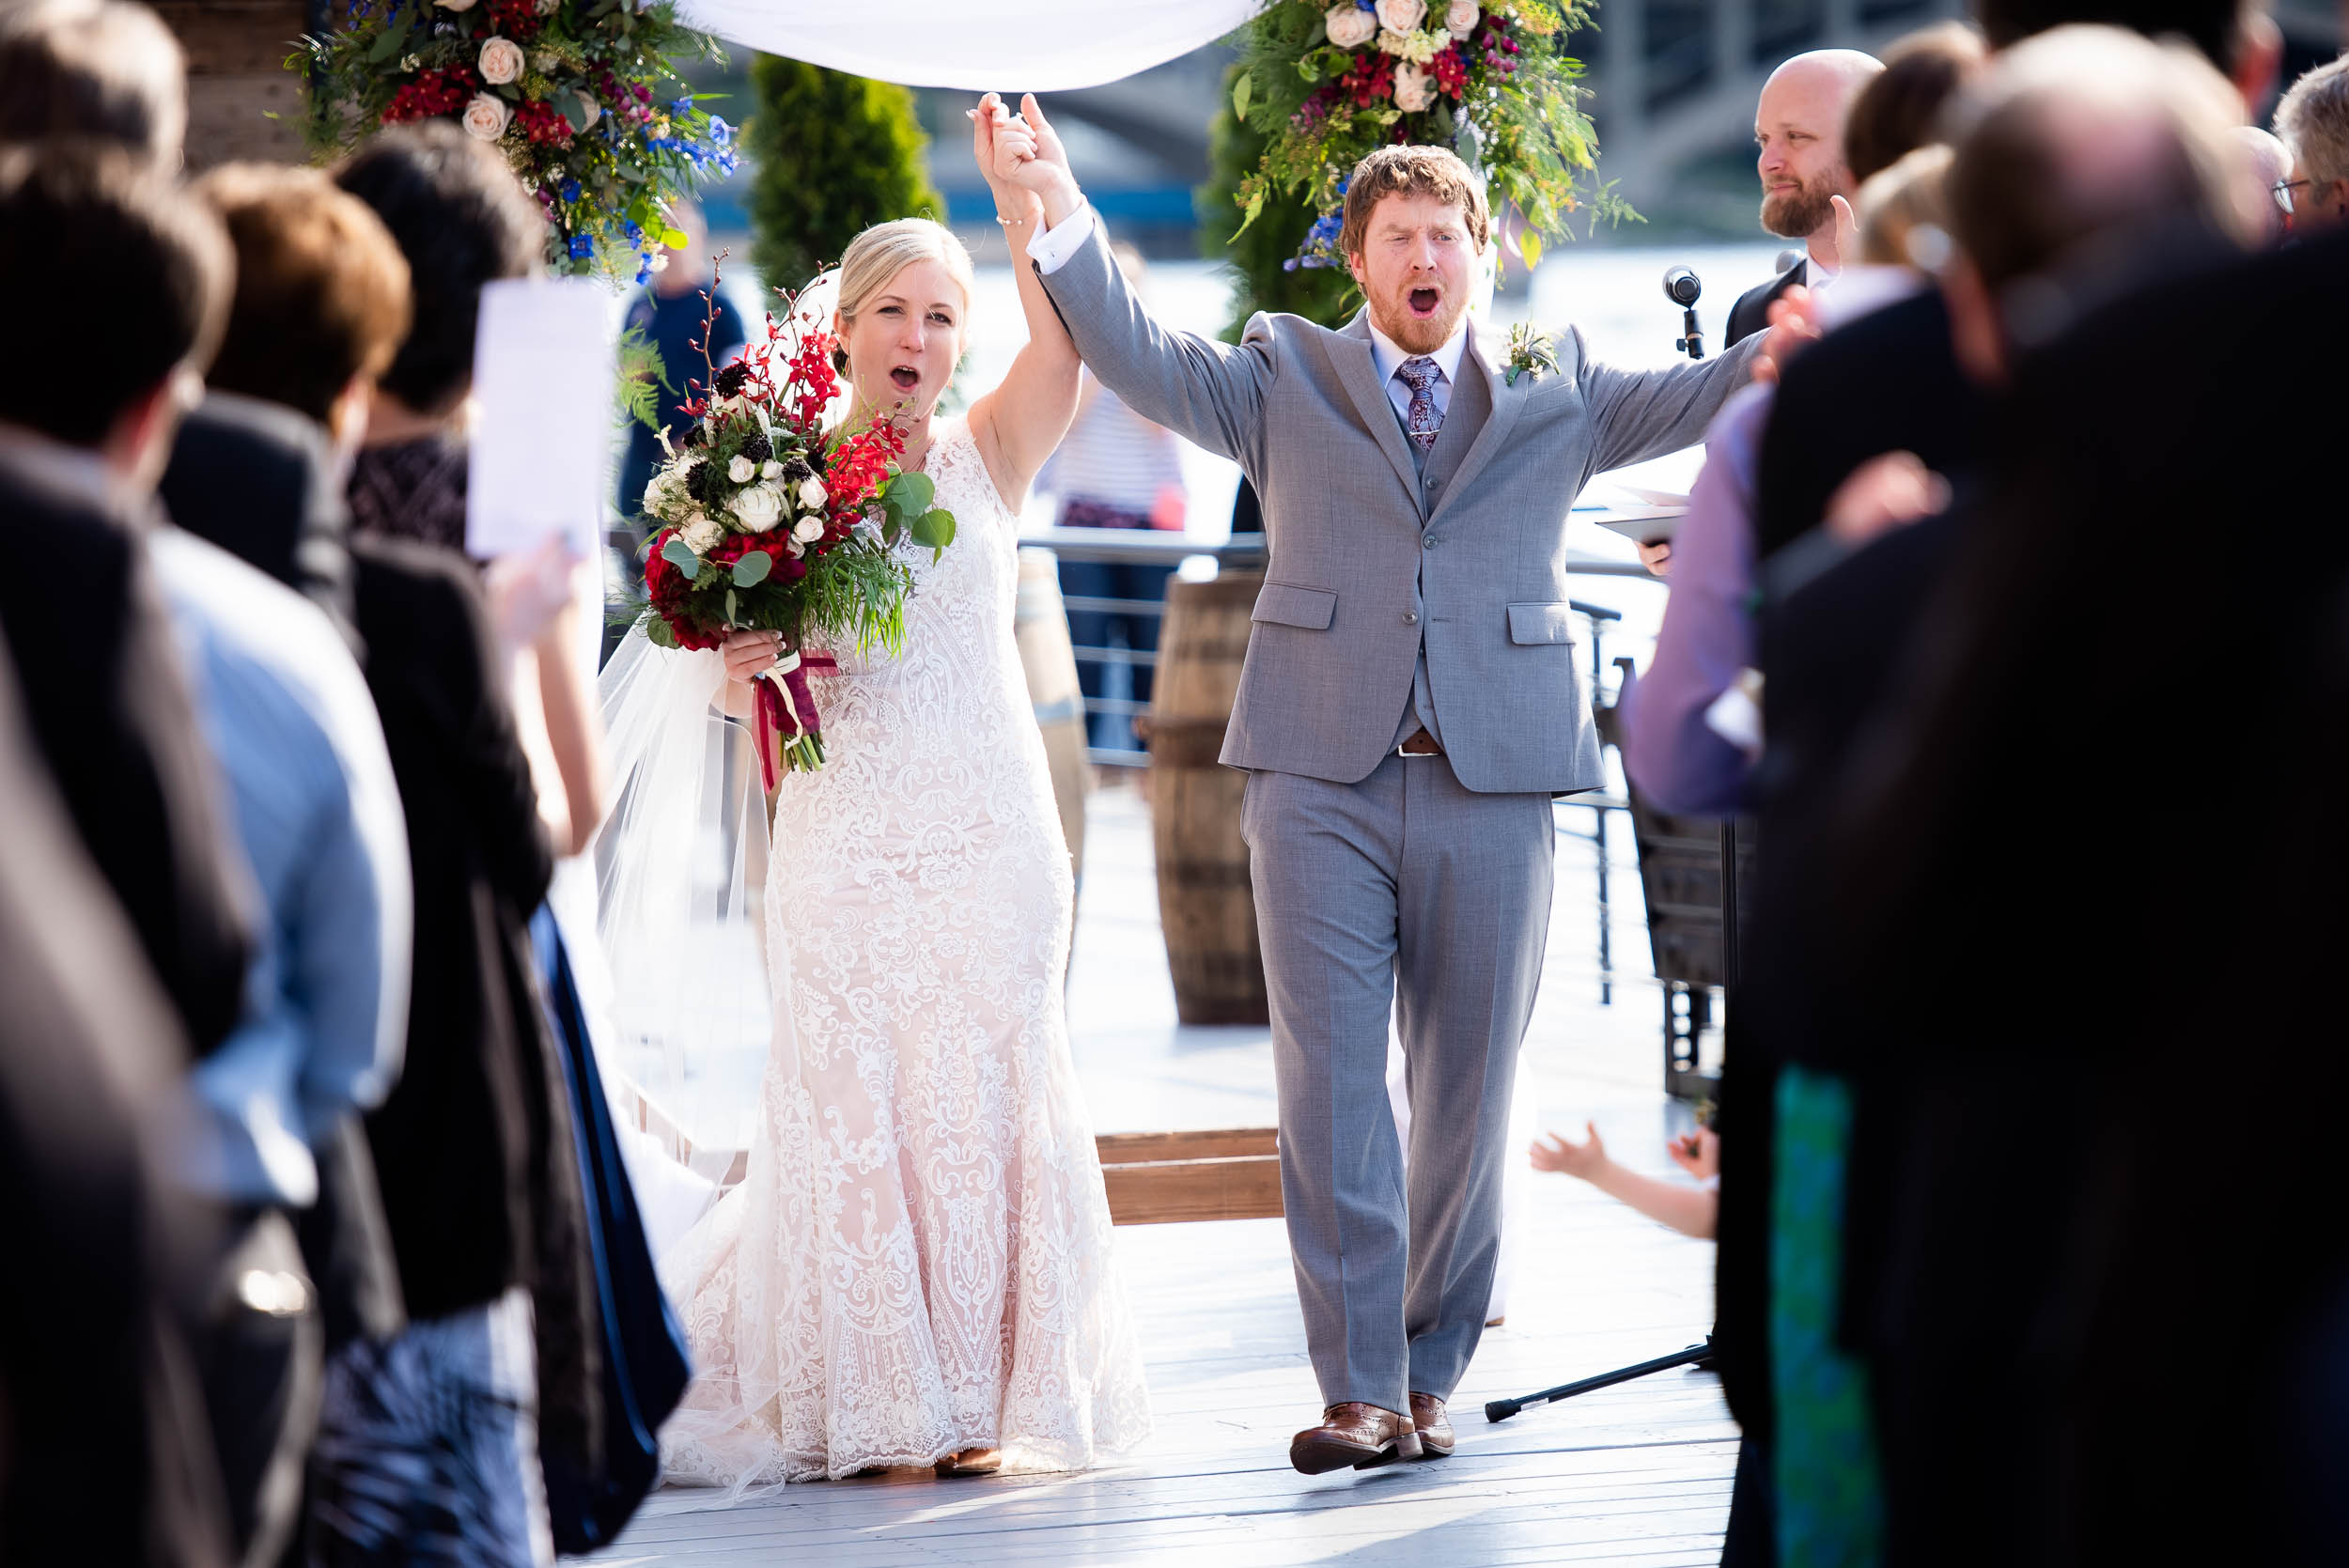 Wedding ceremony exit: Modern industrial Chicago wedding inside Prairie Street Brewhouse captured by J. Brown Photography. Find more wedding ideas at jbrownphotography.com!